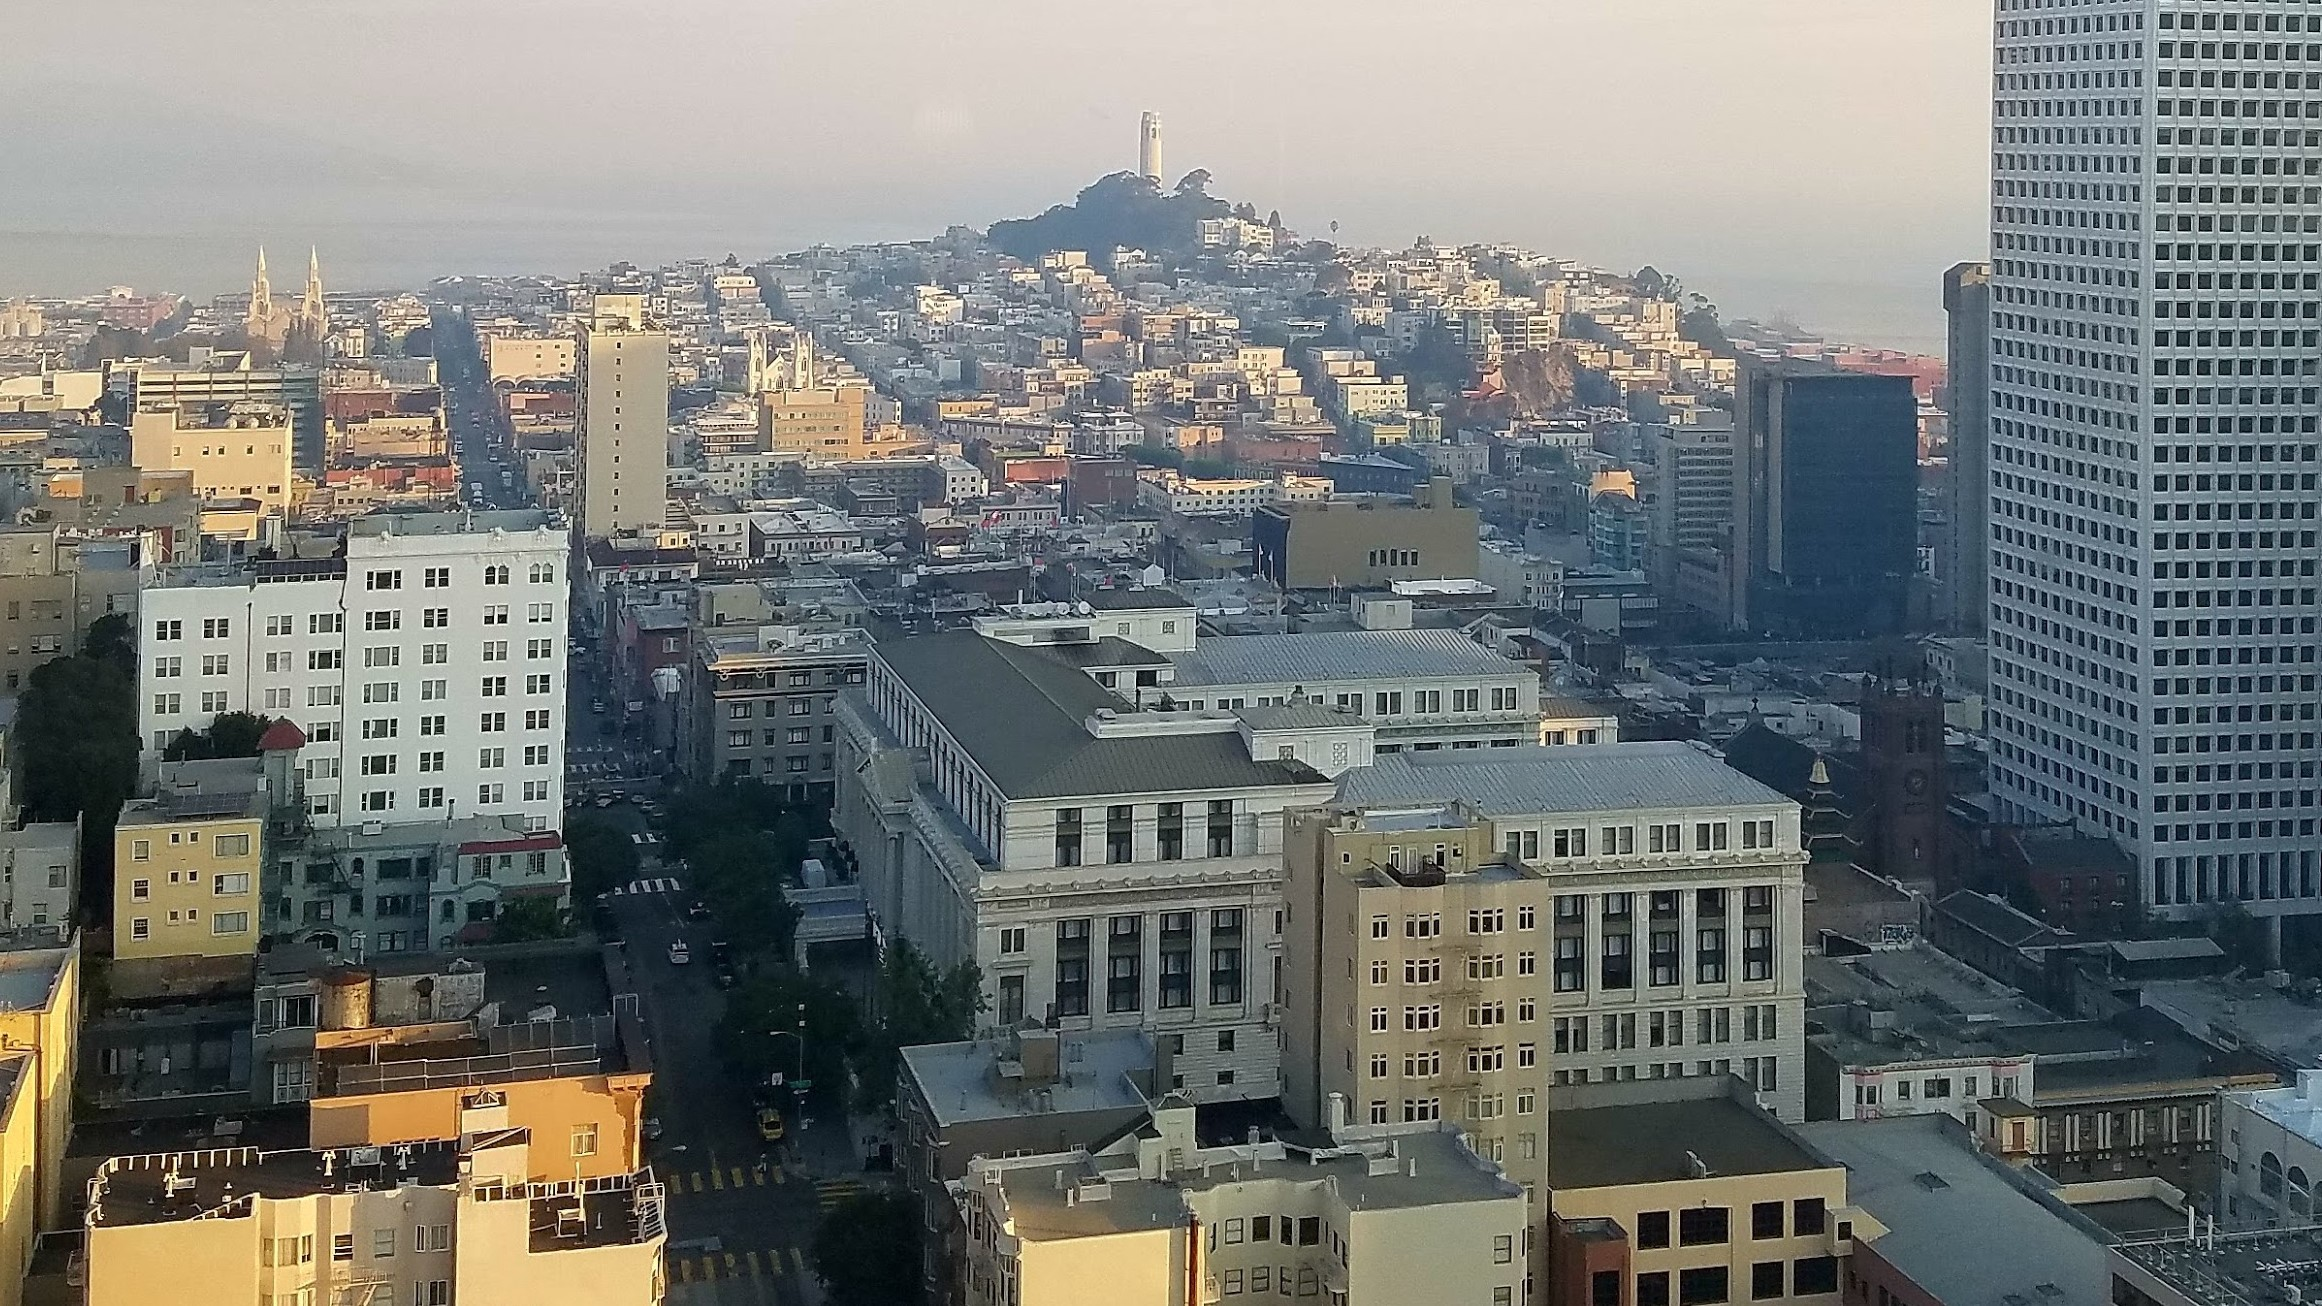 San Francisco, looking from Union Square, October 2017